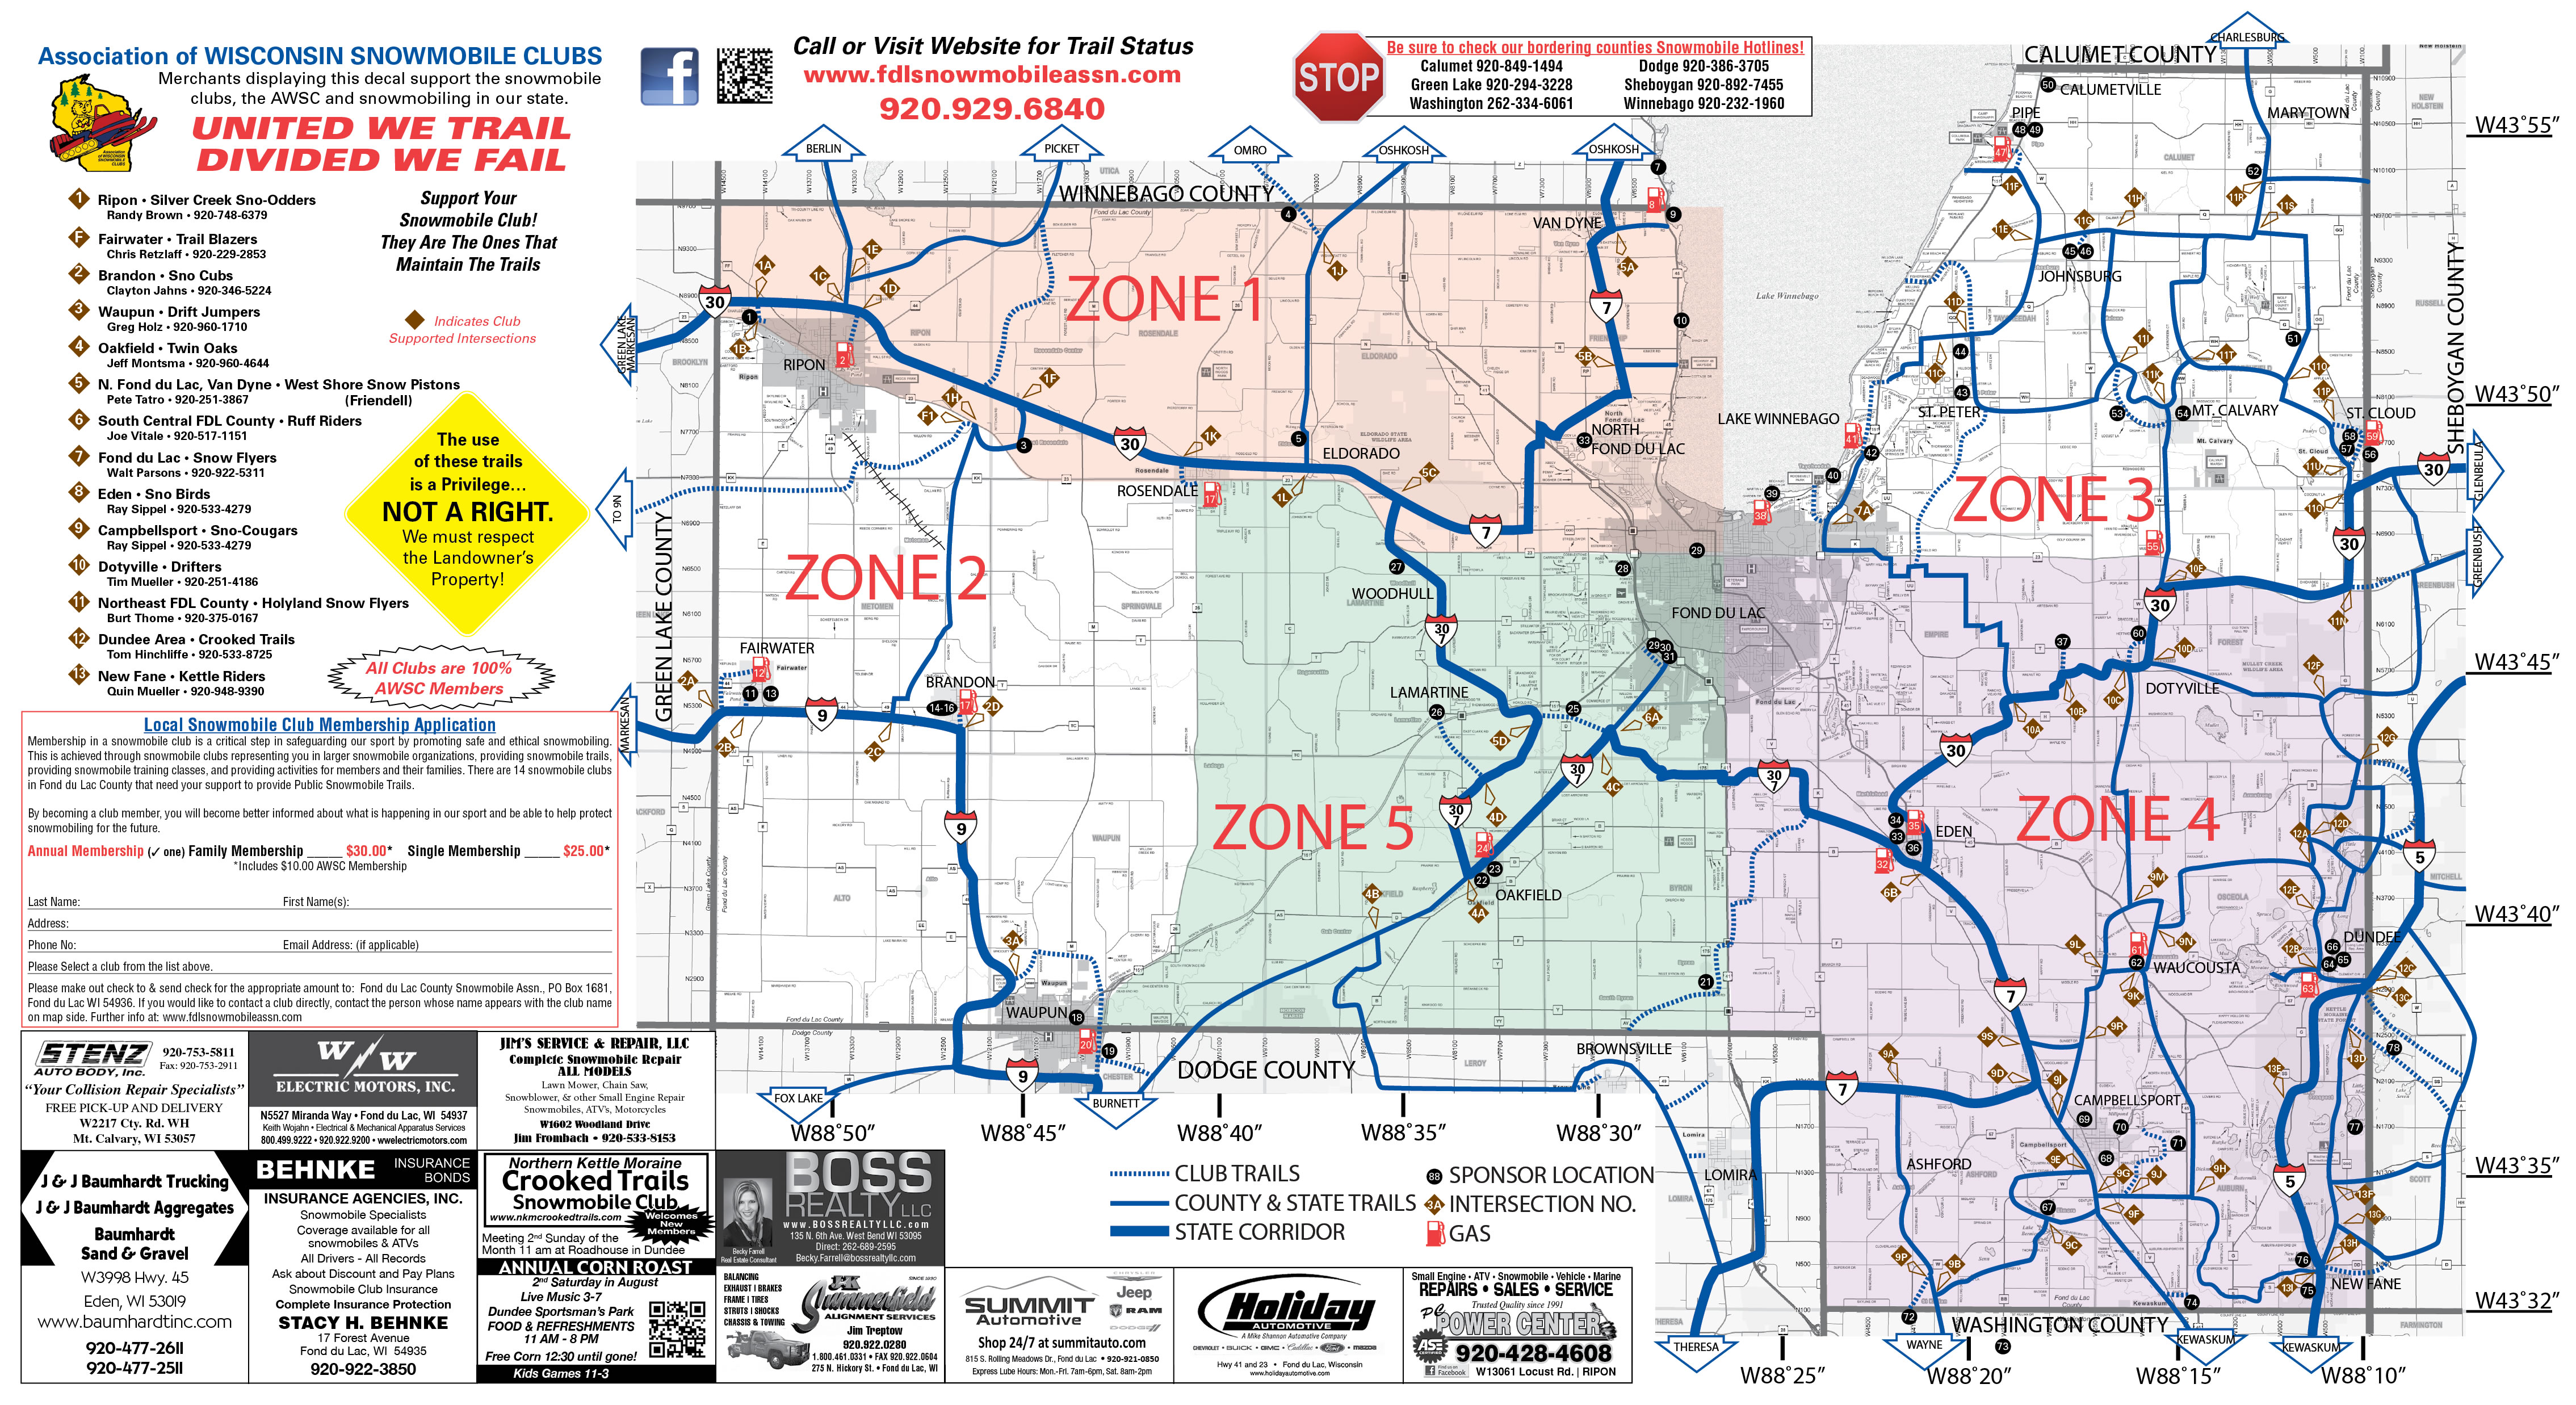 Fond Du Lac Zip Code Map.County Maps Waupun Lodging Attractions Waupun Drift Jumpers